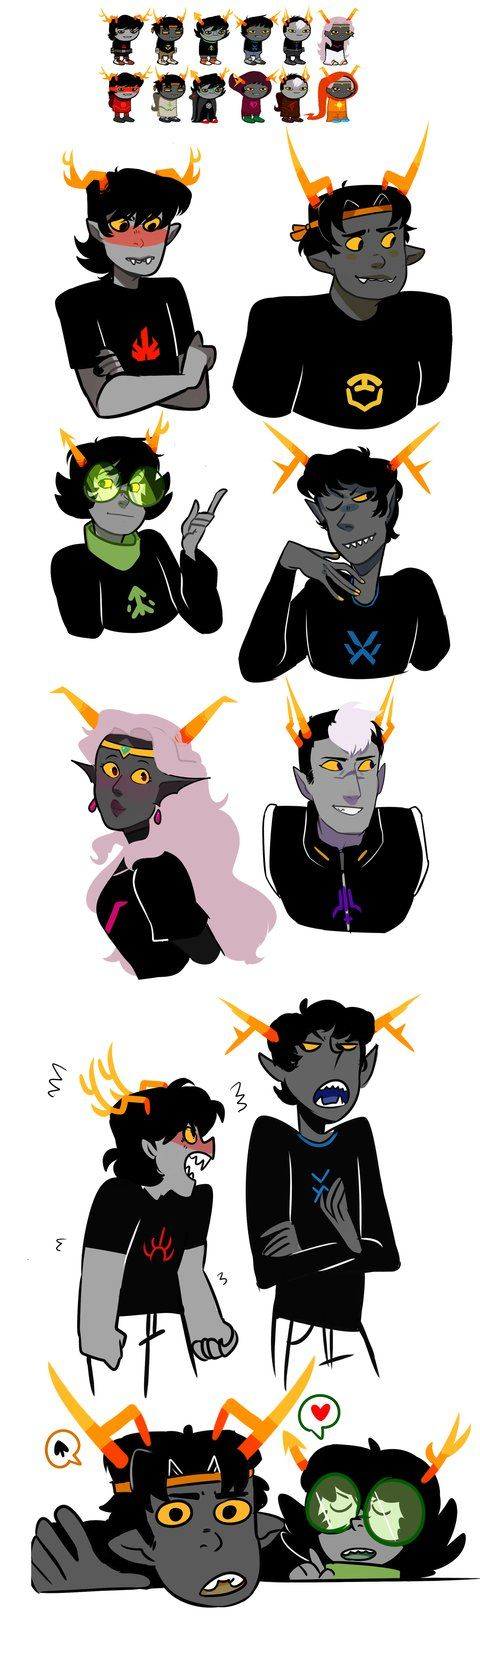 VOLTRON [HOMESTUCK AU] by KitsuneZakuro on DeviantArt